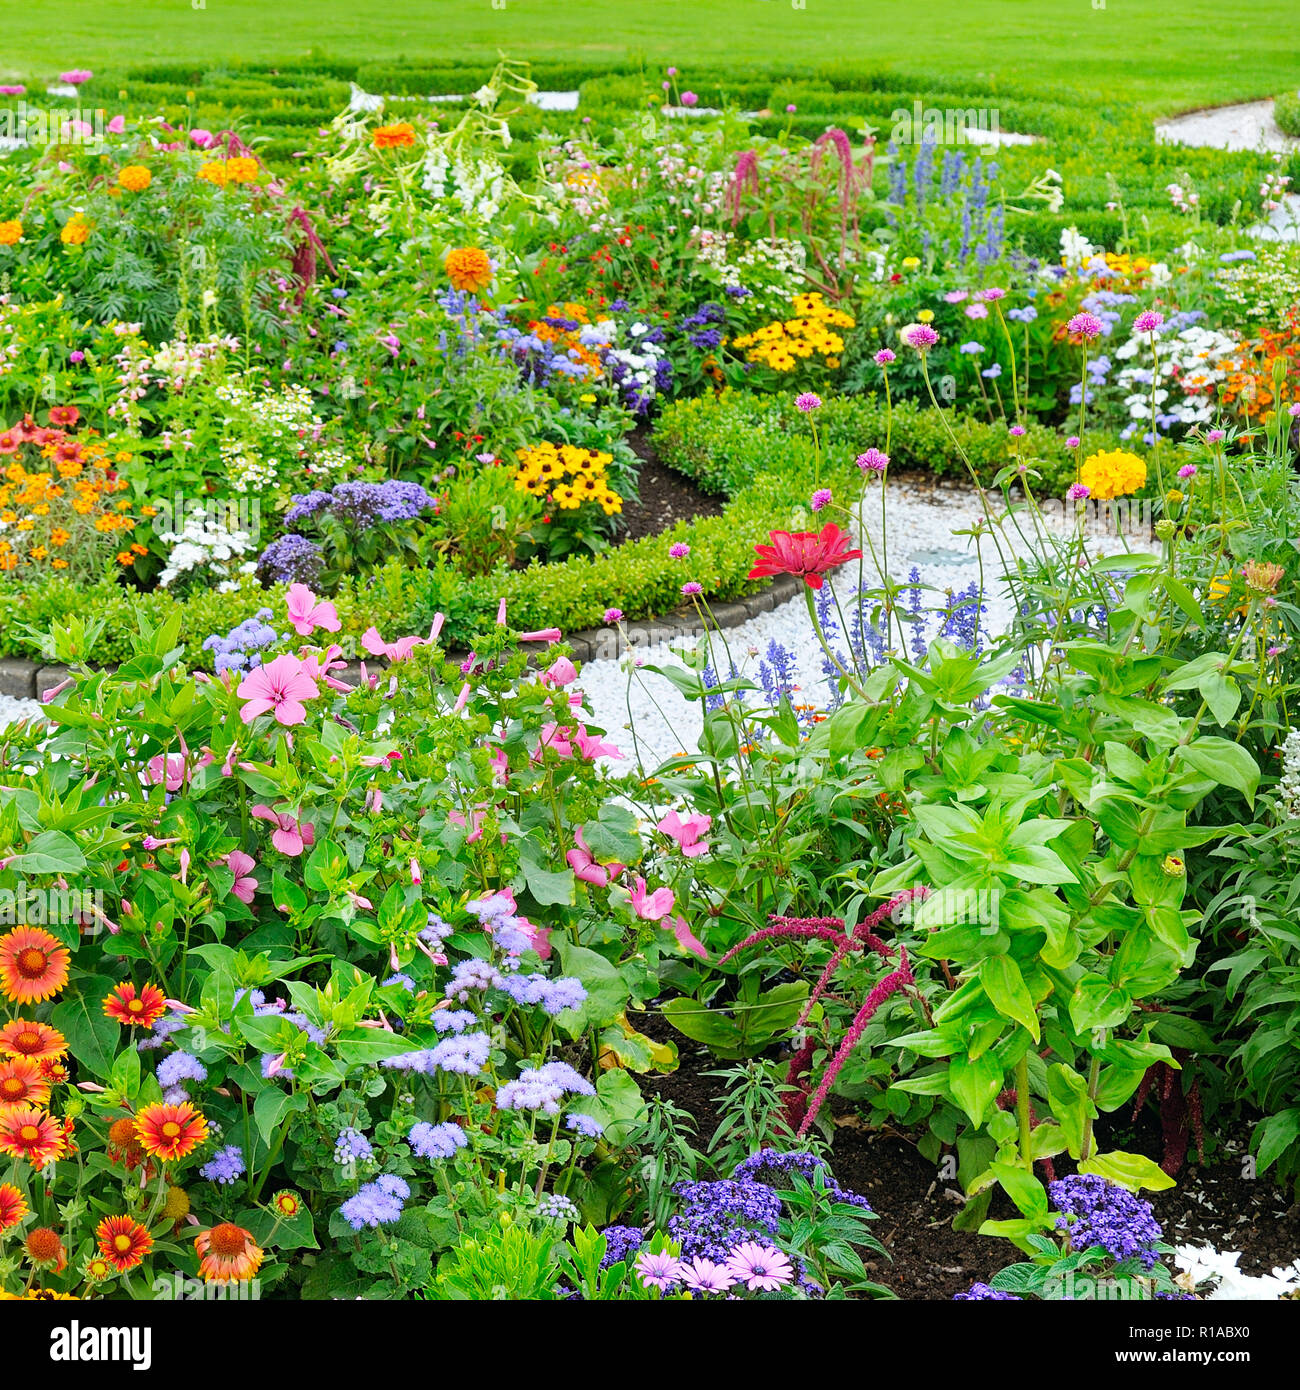 Flower Bed Stock Photos U0026 Flower Bed Stock Images   Alamy